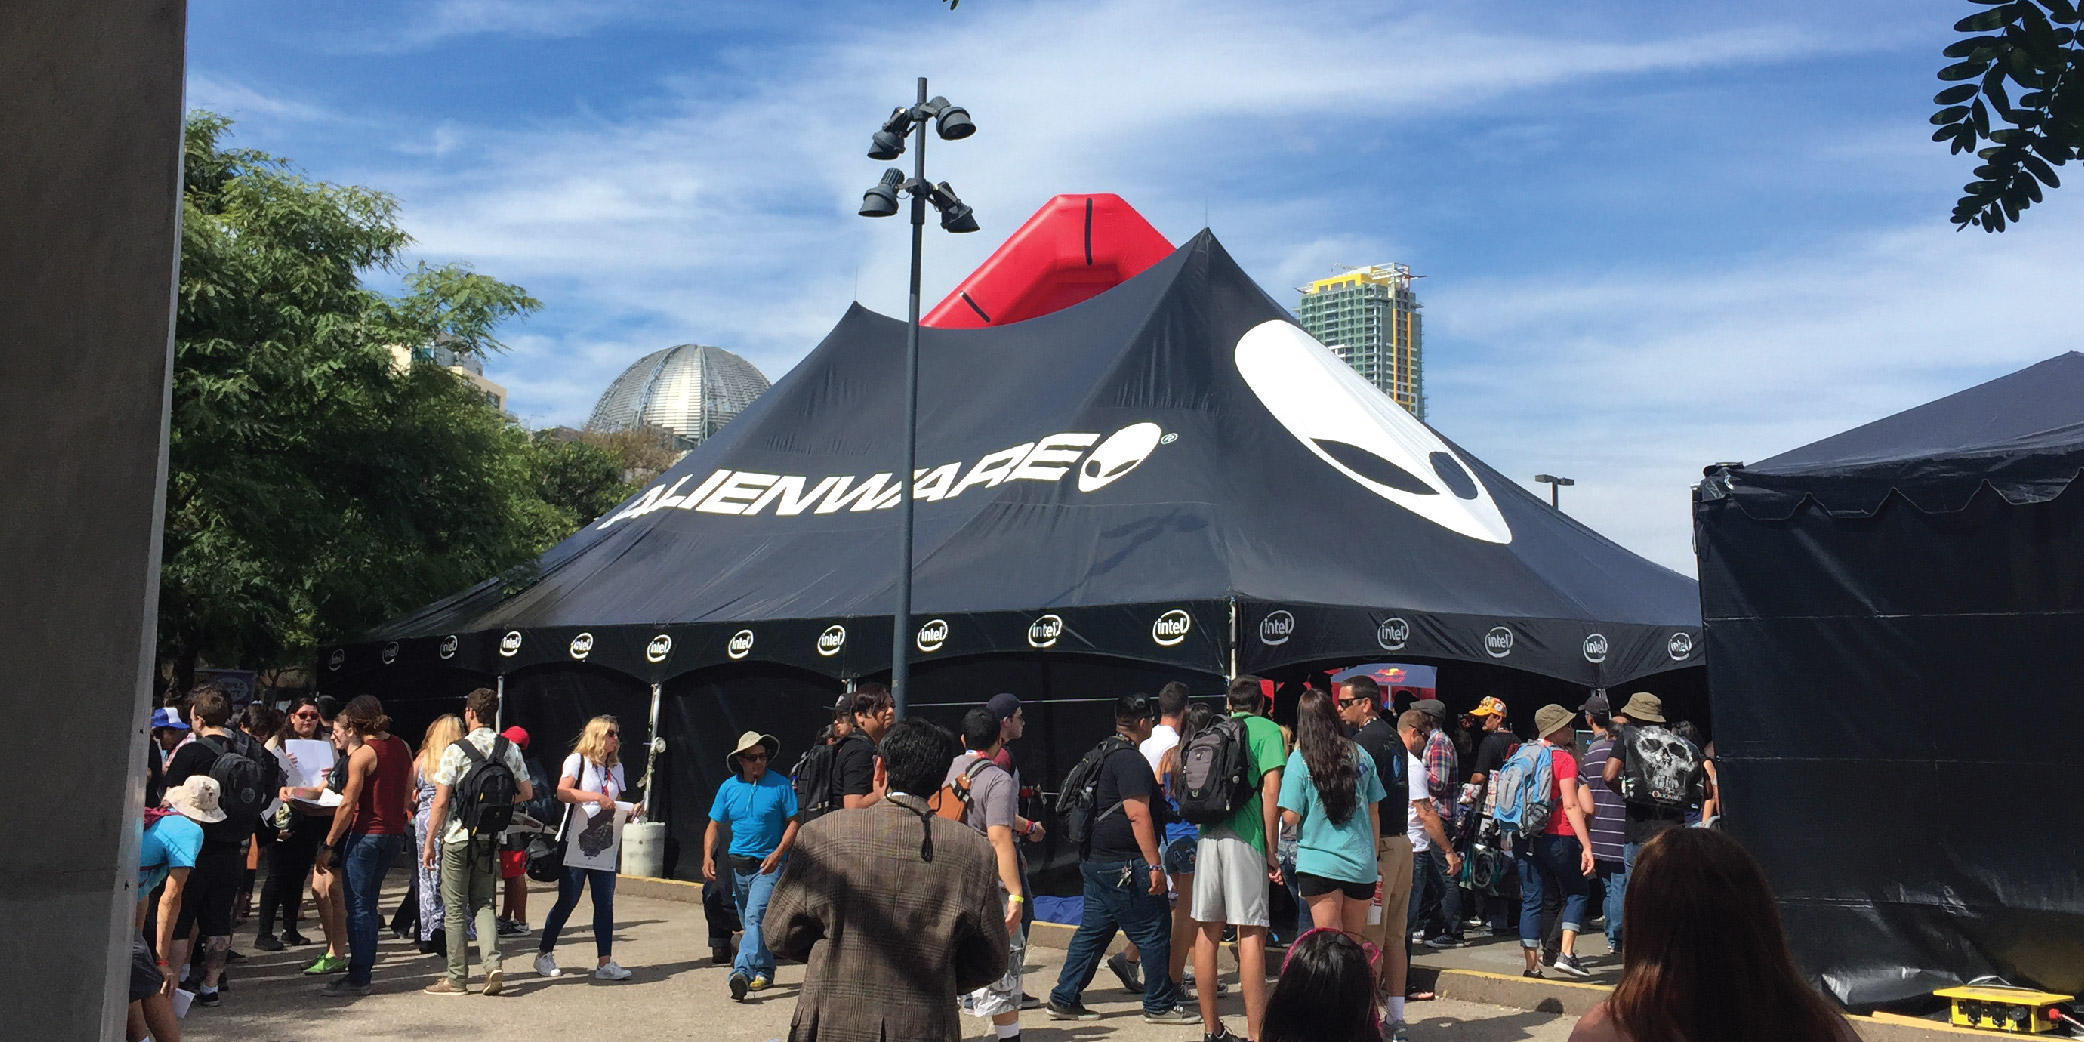 Alienware Custom Frame Tent at comic con with a many passerby